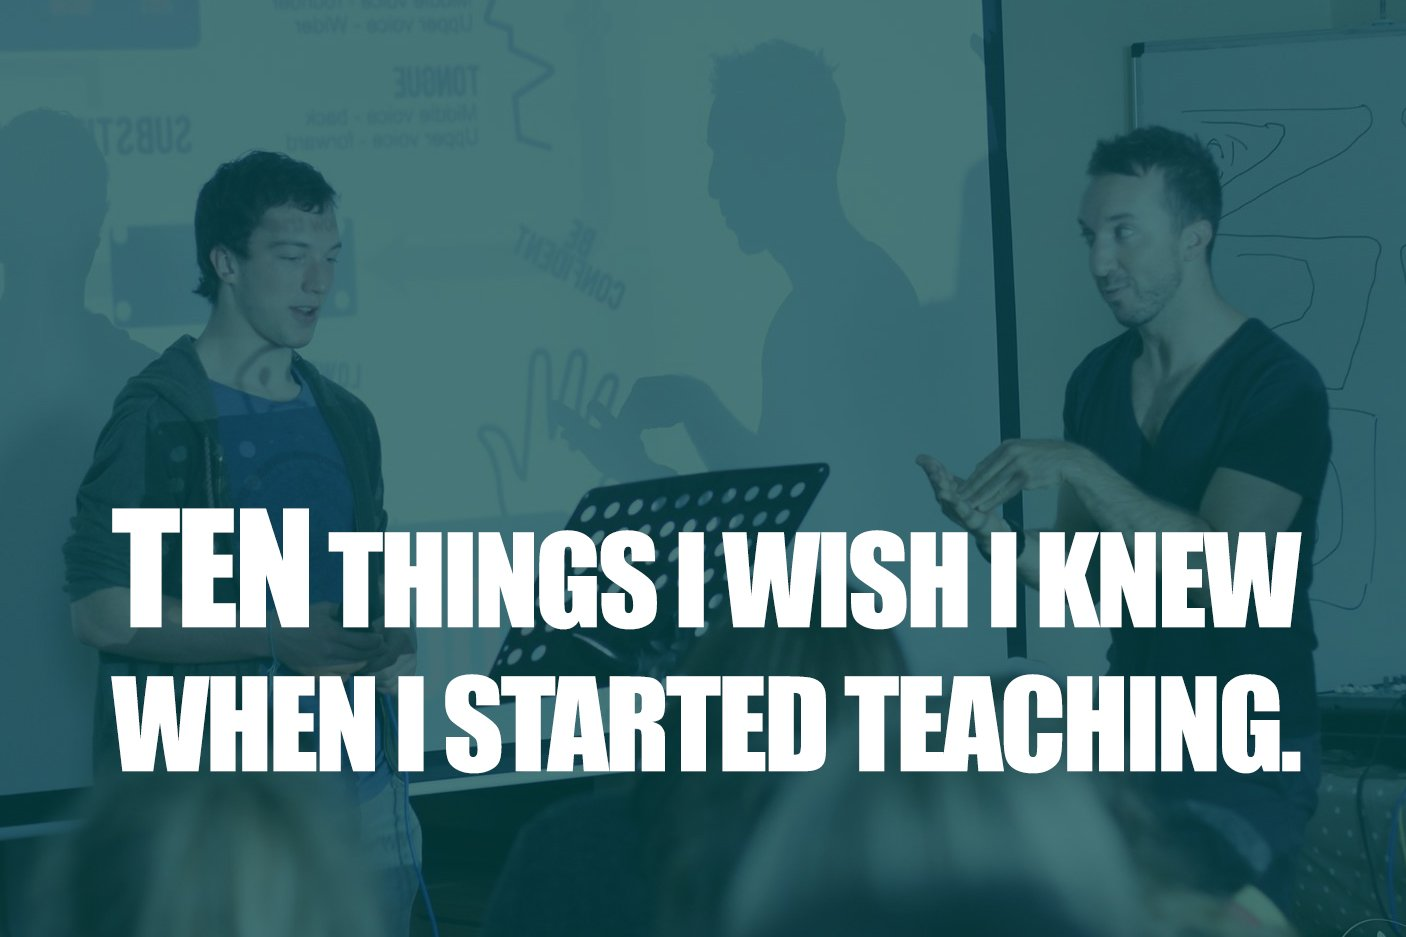 Ten Things I Wish I Knew When I Started Teaching.